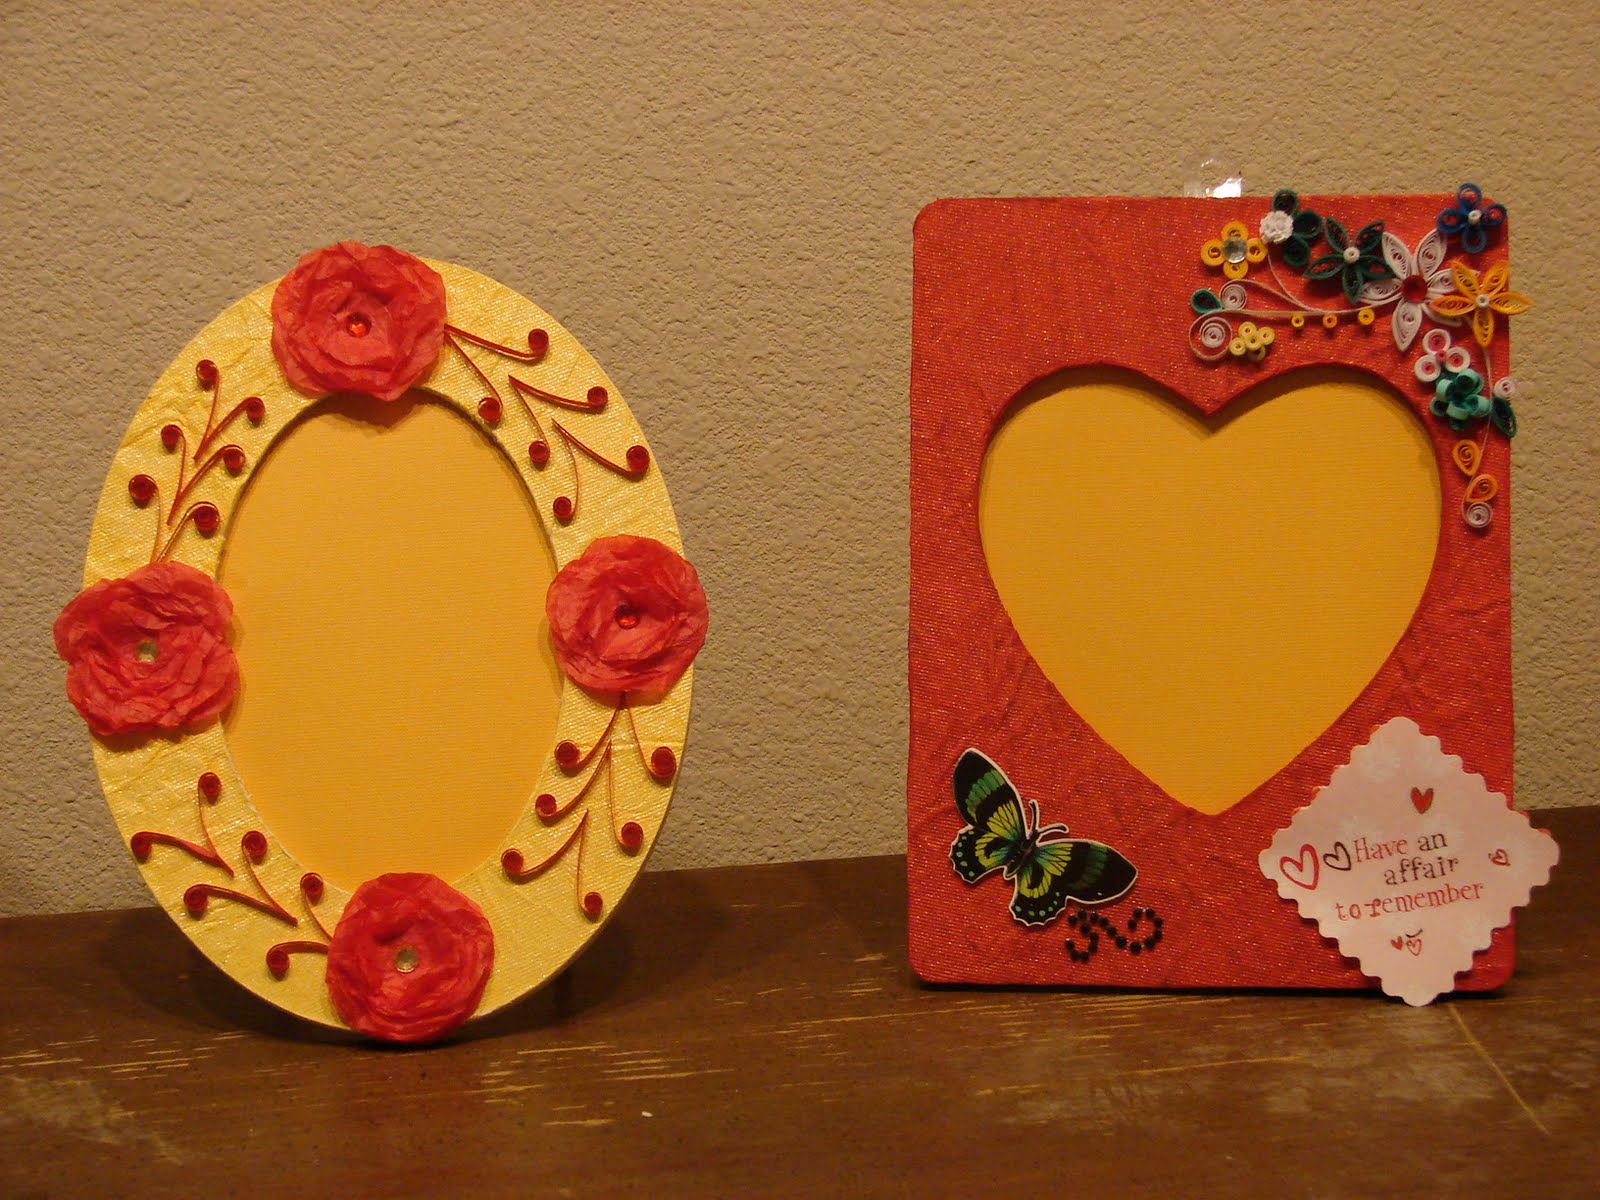 Make Flowers And Yes Handmade Paper For Another Detail Or To Buy Please Visit My Shop At Etsy Vidushirefsi